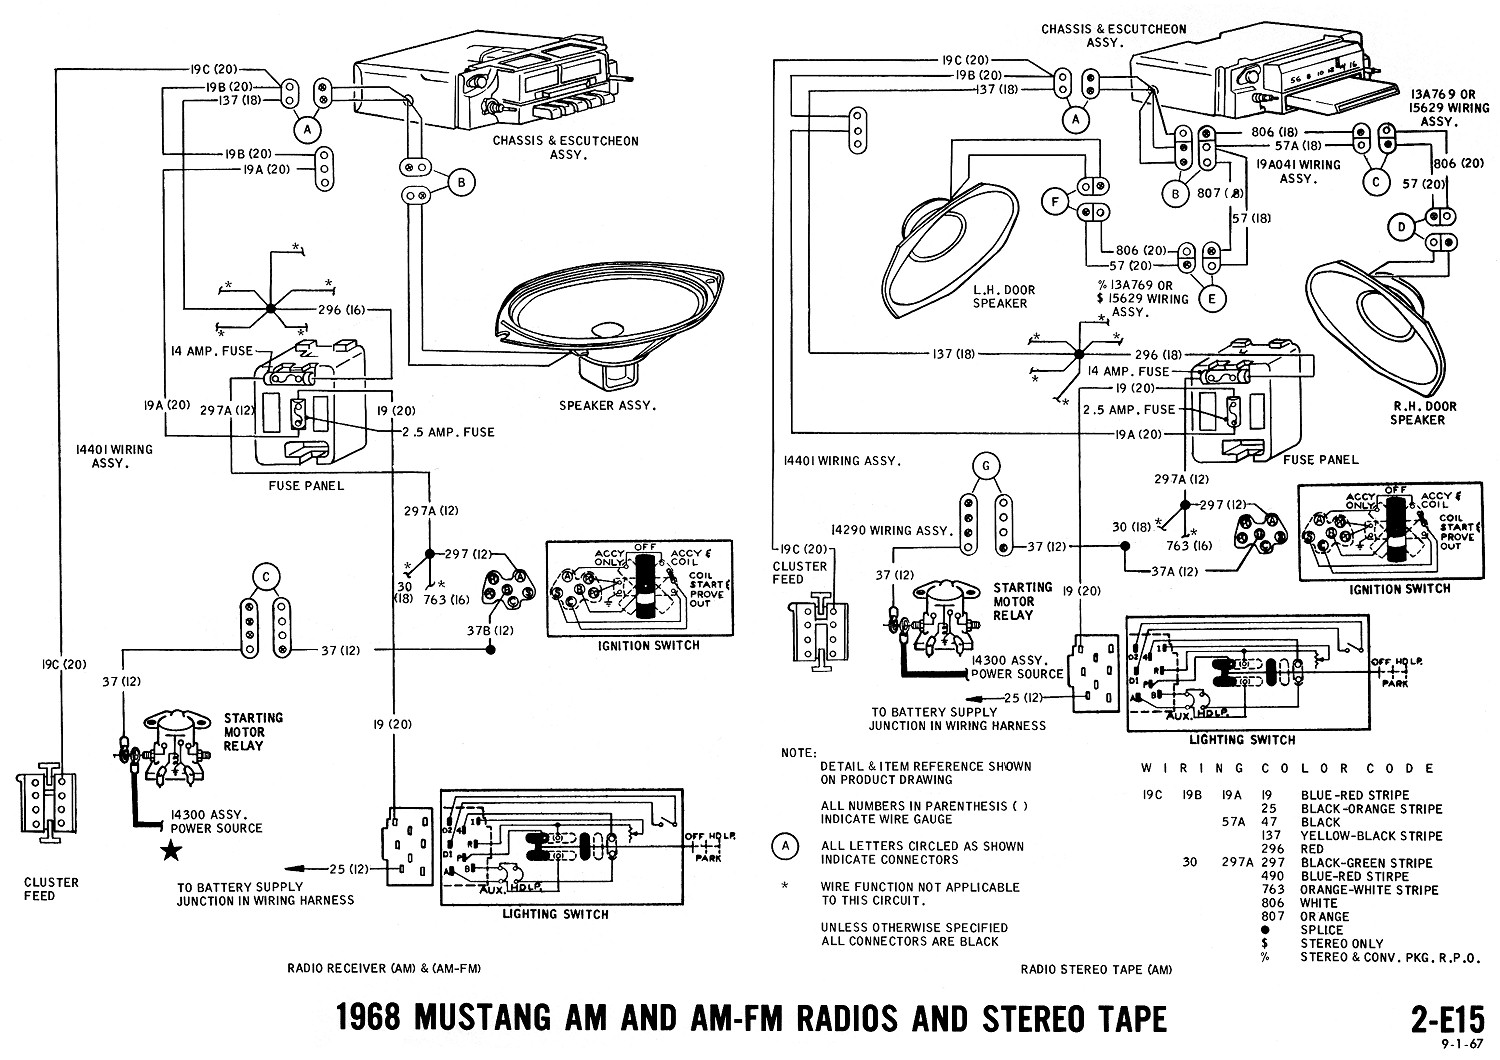 E15 66 mustang wiring diagram radio tape 66 mustang fuse diagram 2004 ford mustang wiring diagram at eliteediting.co